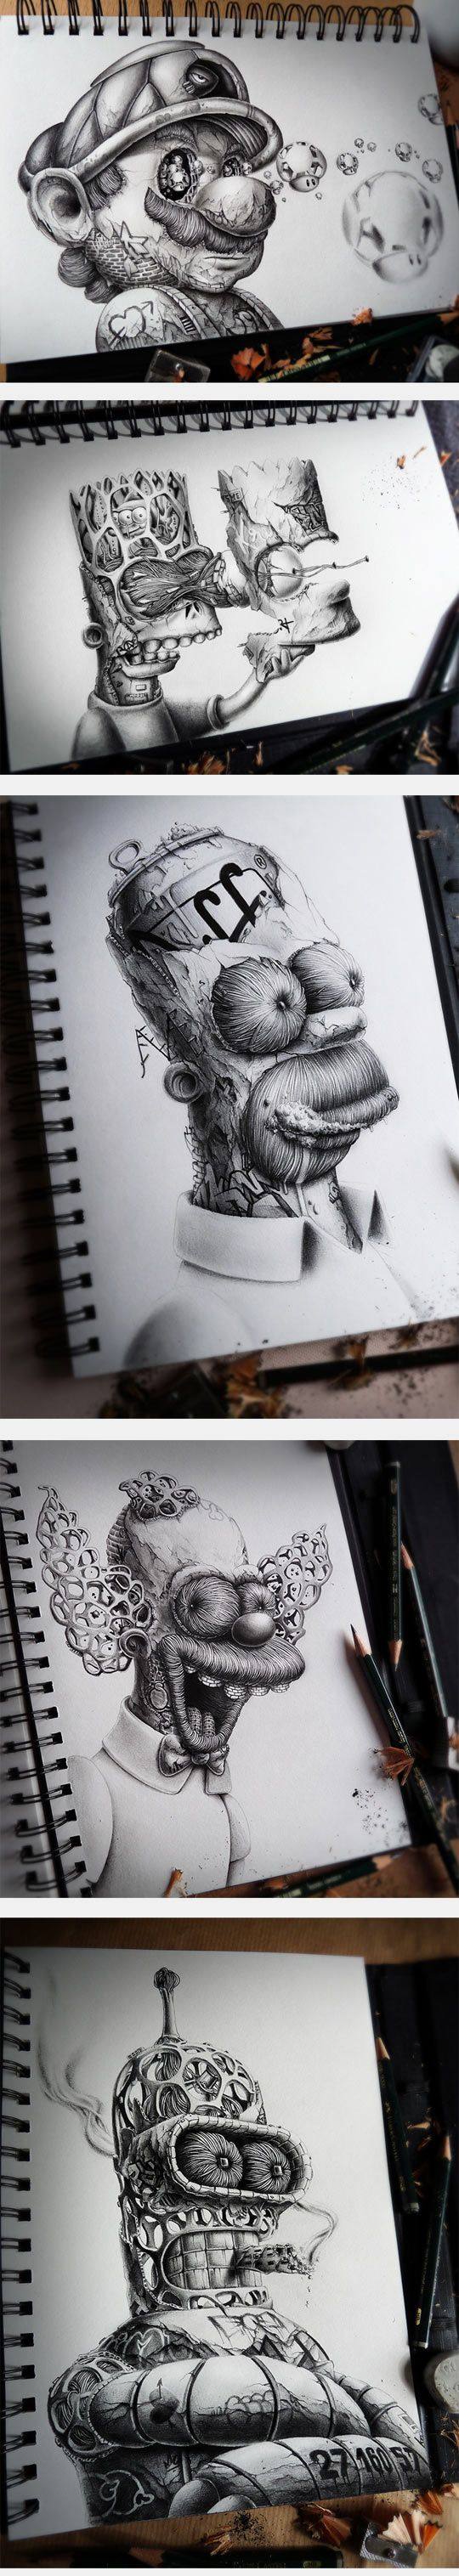 Famous Characters artistically destroyed. The 'Distroy' series by PEZ.